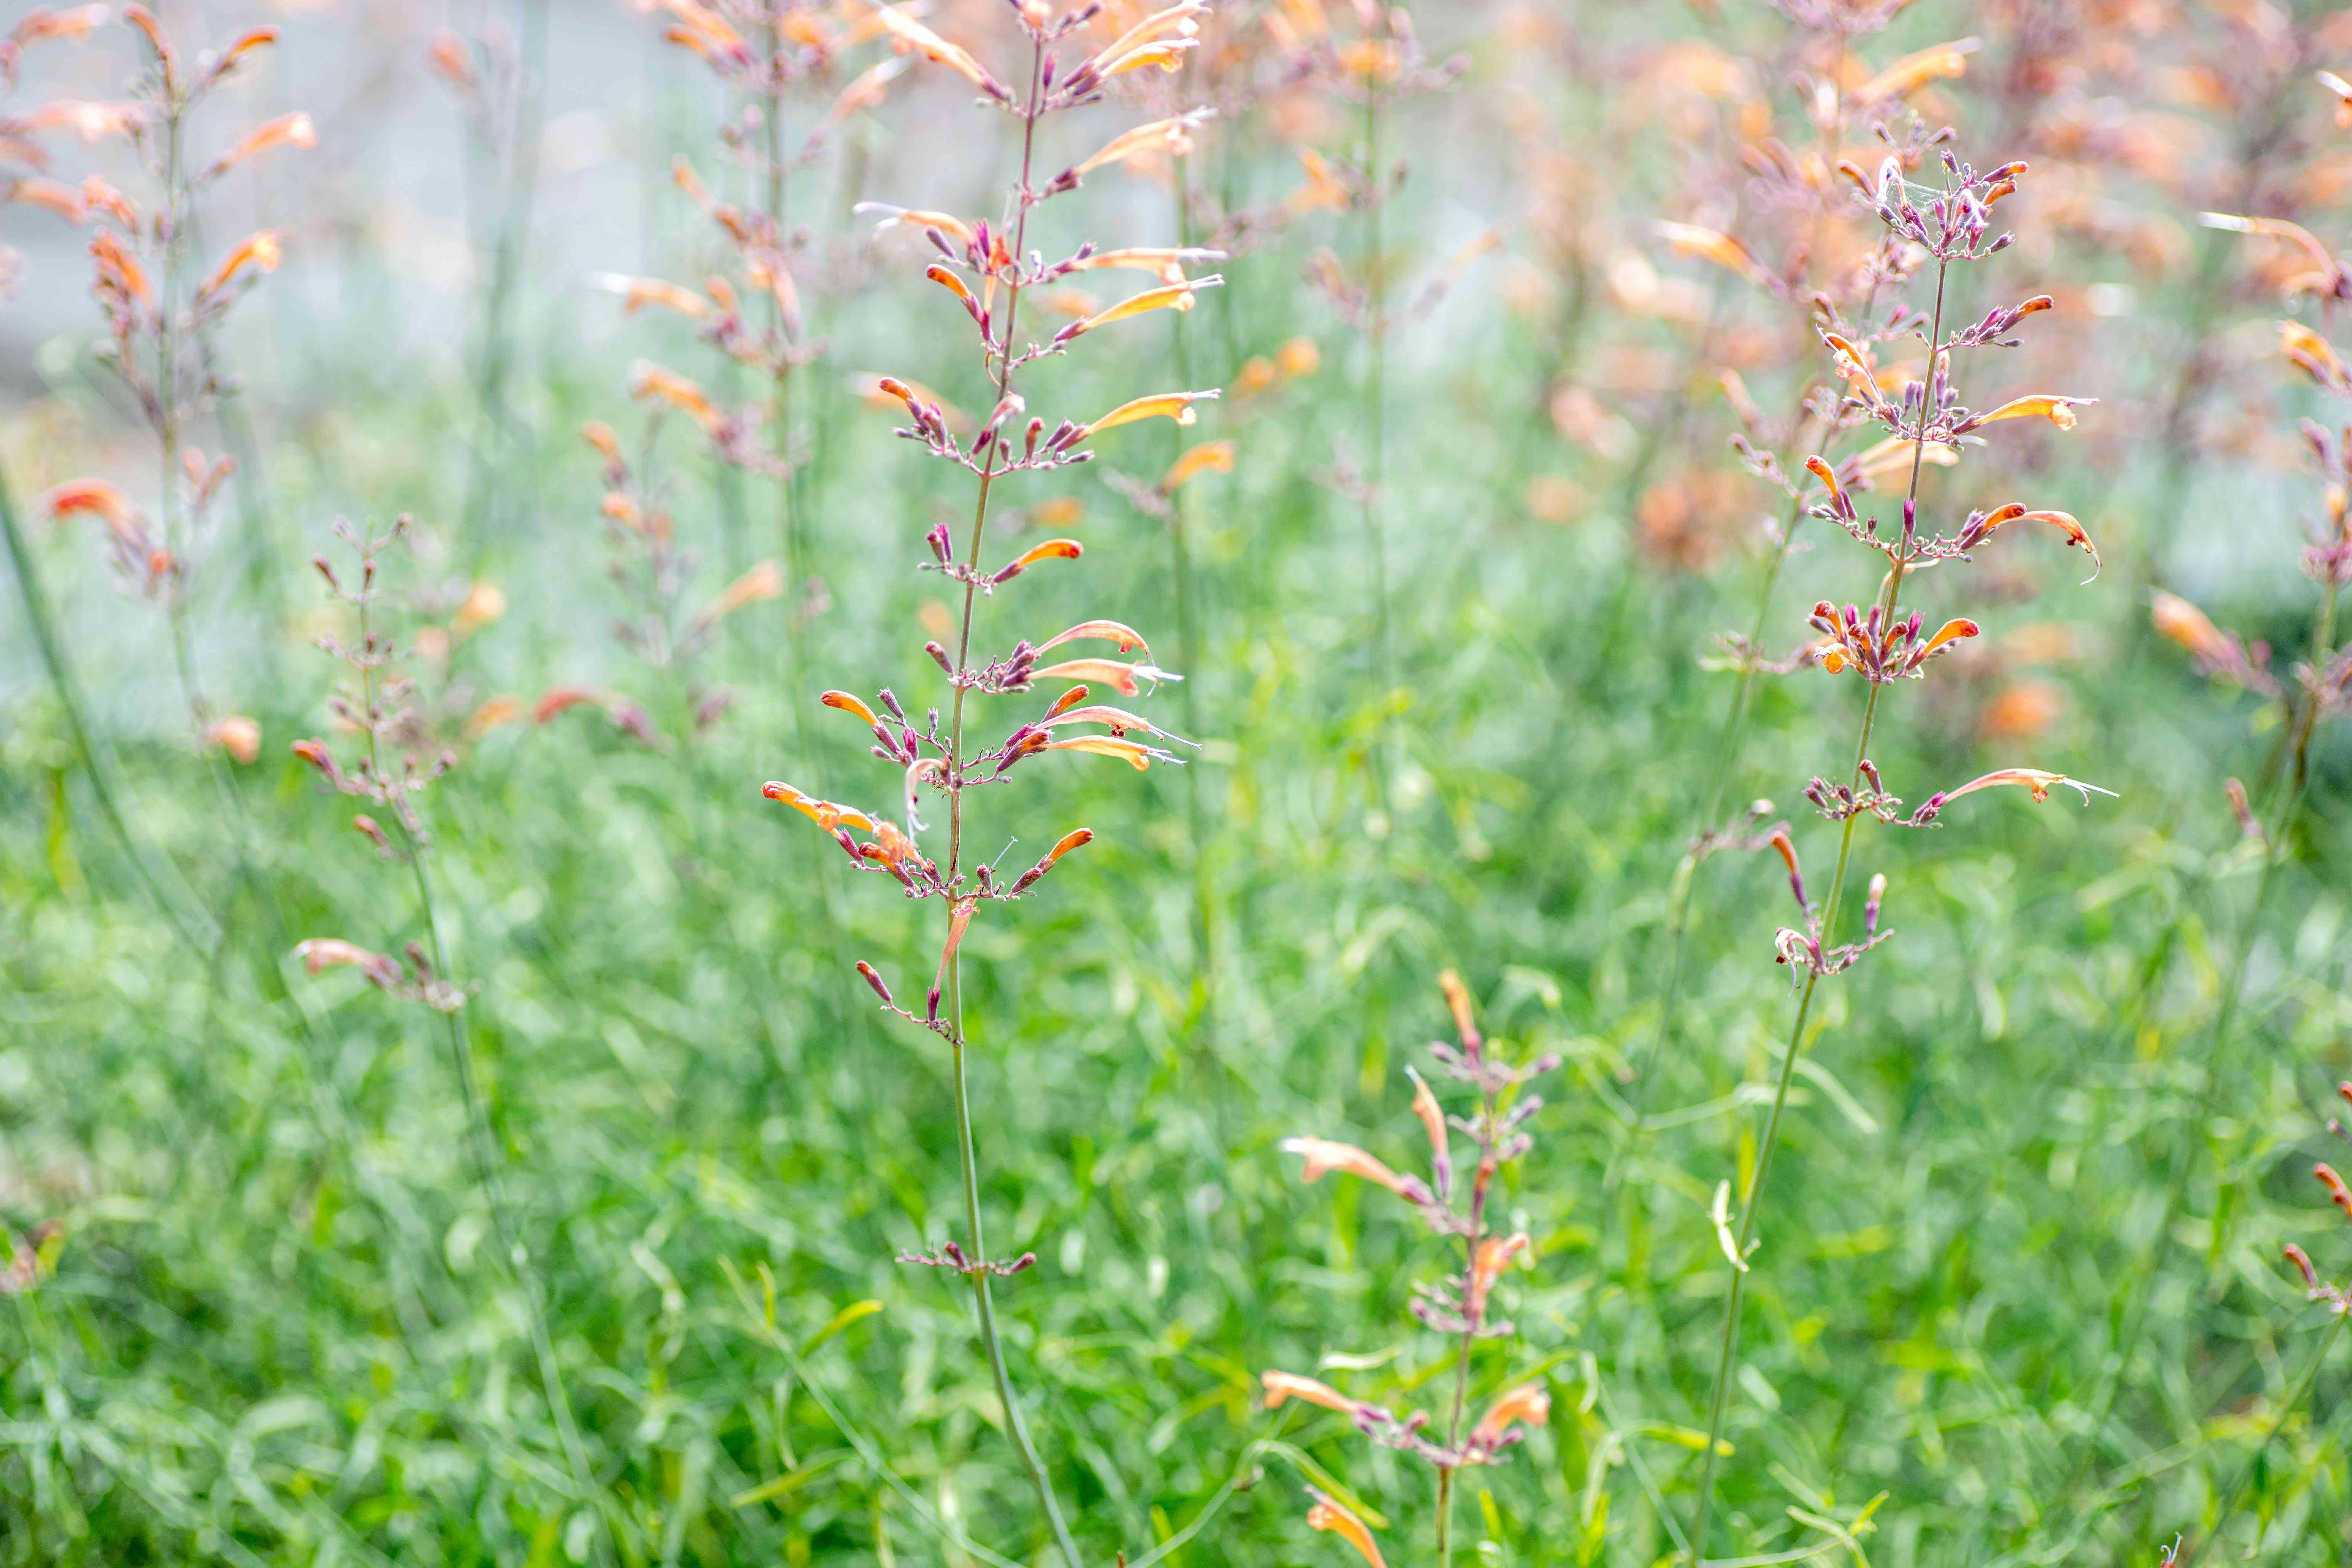 Sunset hyssop flowers on thin stems with tiny orange and pink trumpet-shaped blooms